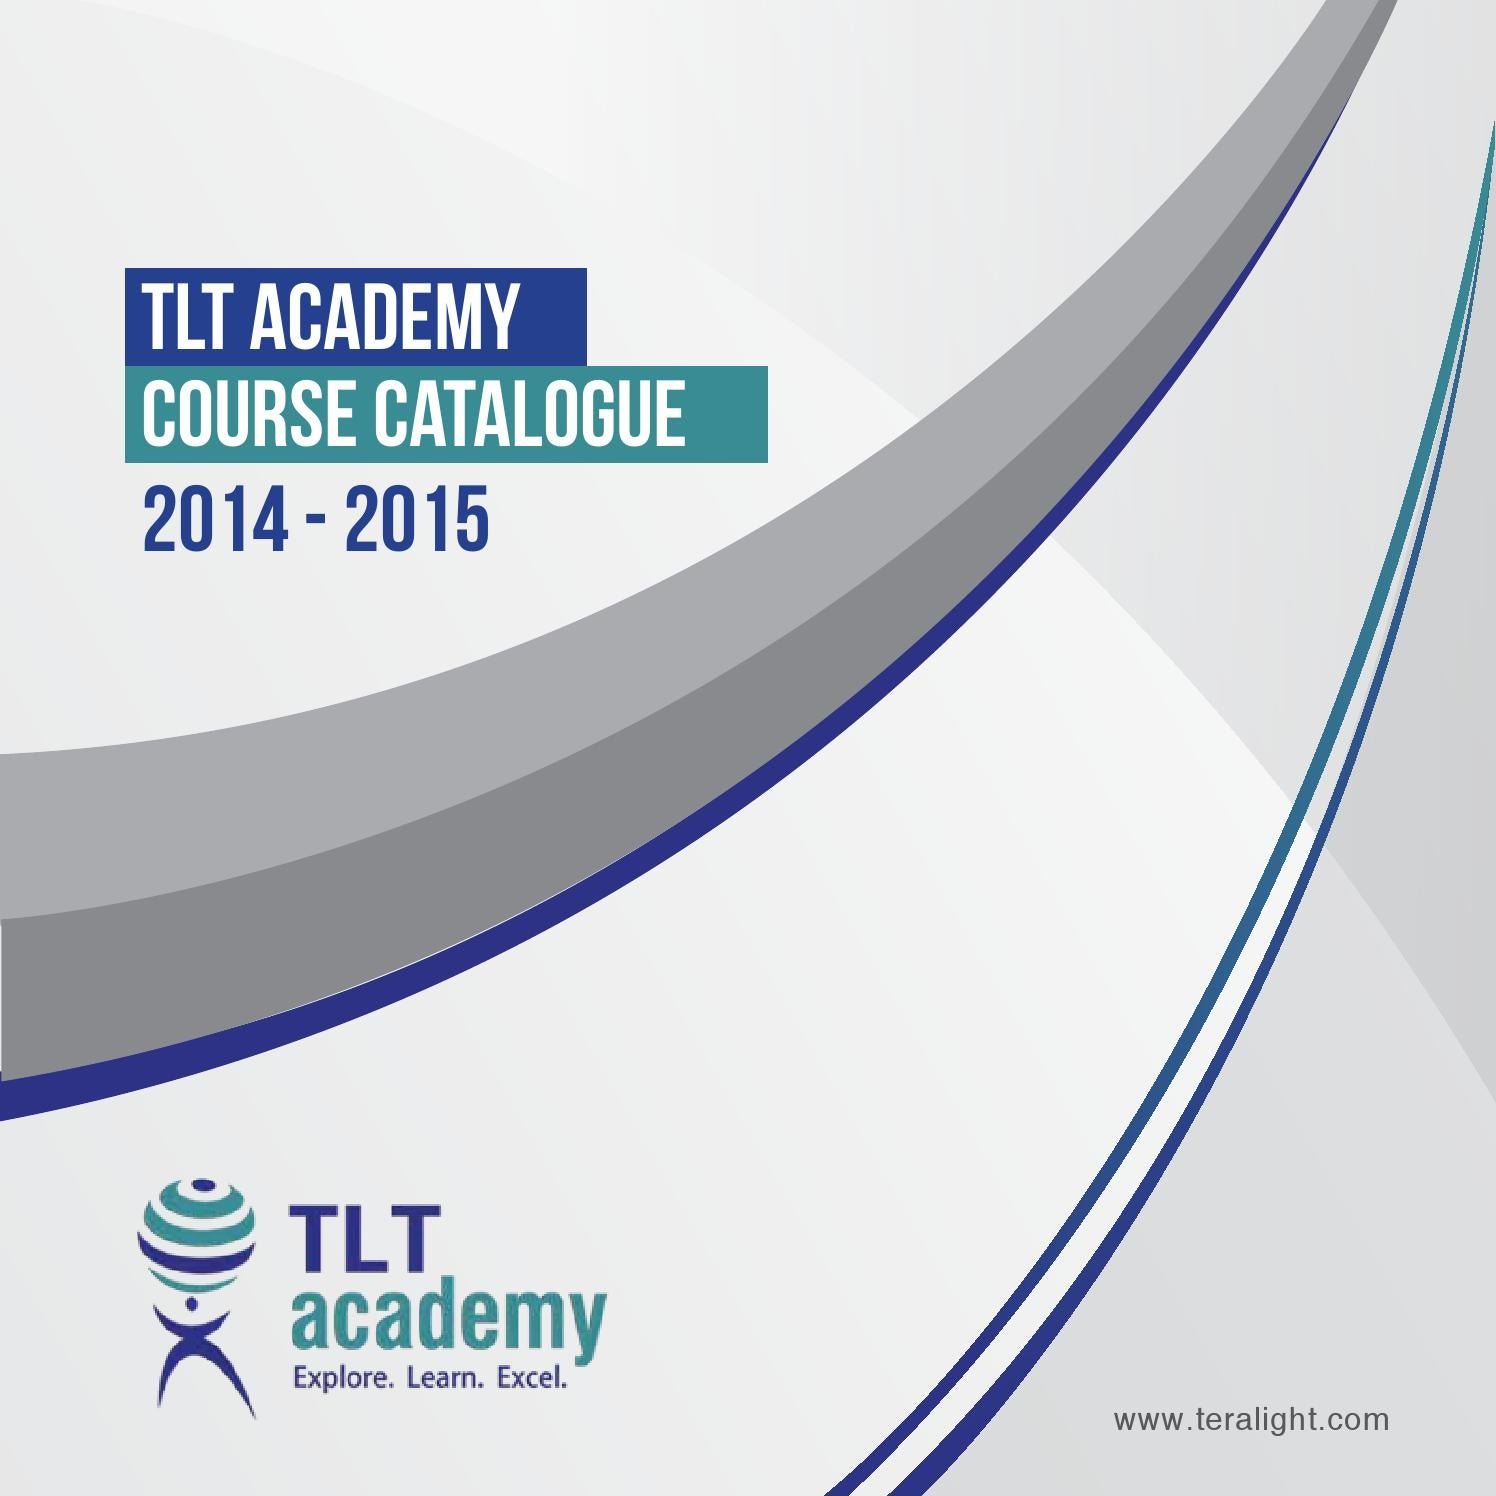 Tlt academy course catalogue by teralight issuu 1betcityfo Images